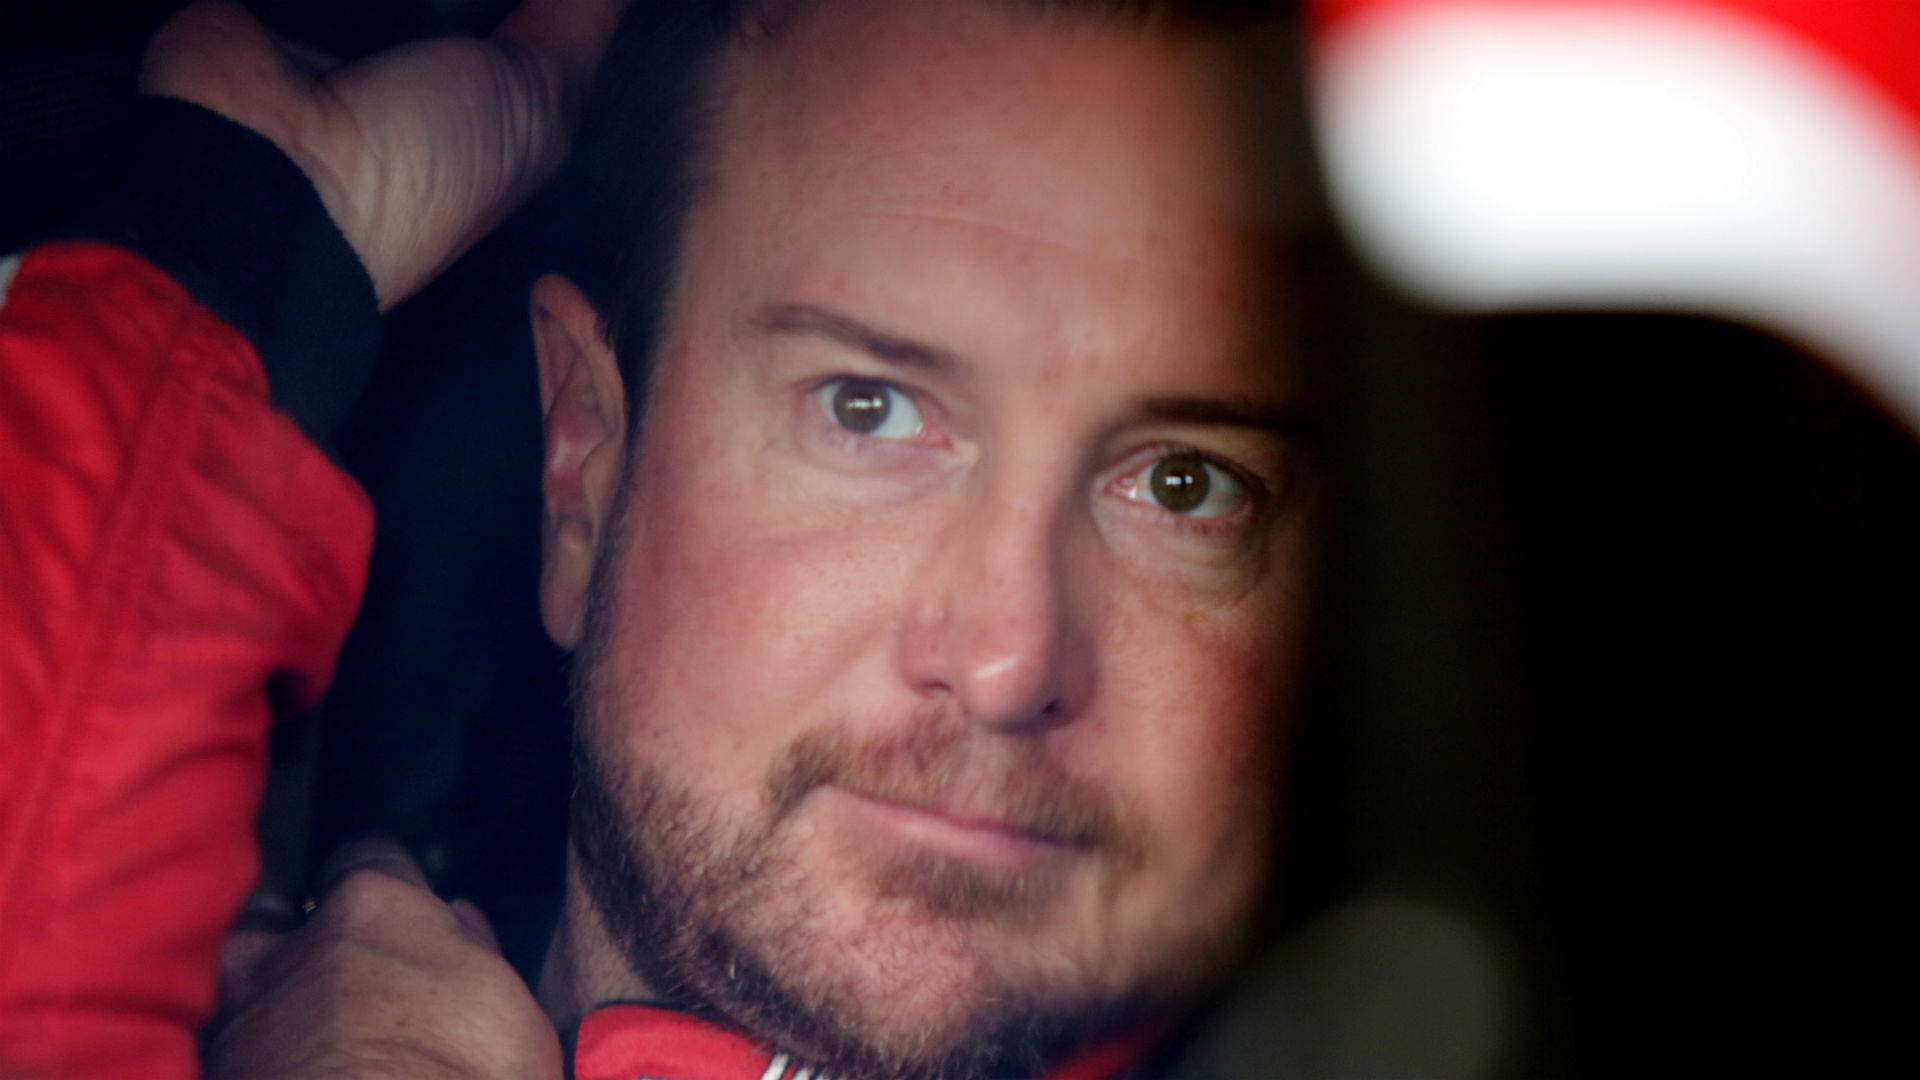 NASCAR odds and driver ratings – Kurt Busch is Harvick's equal ahead of All-Star Race